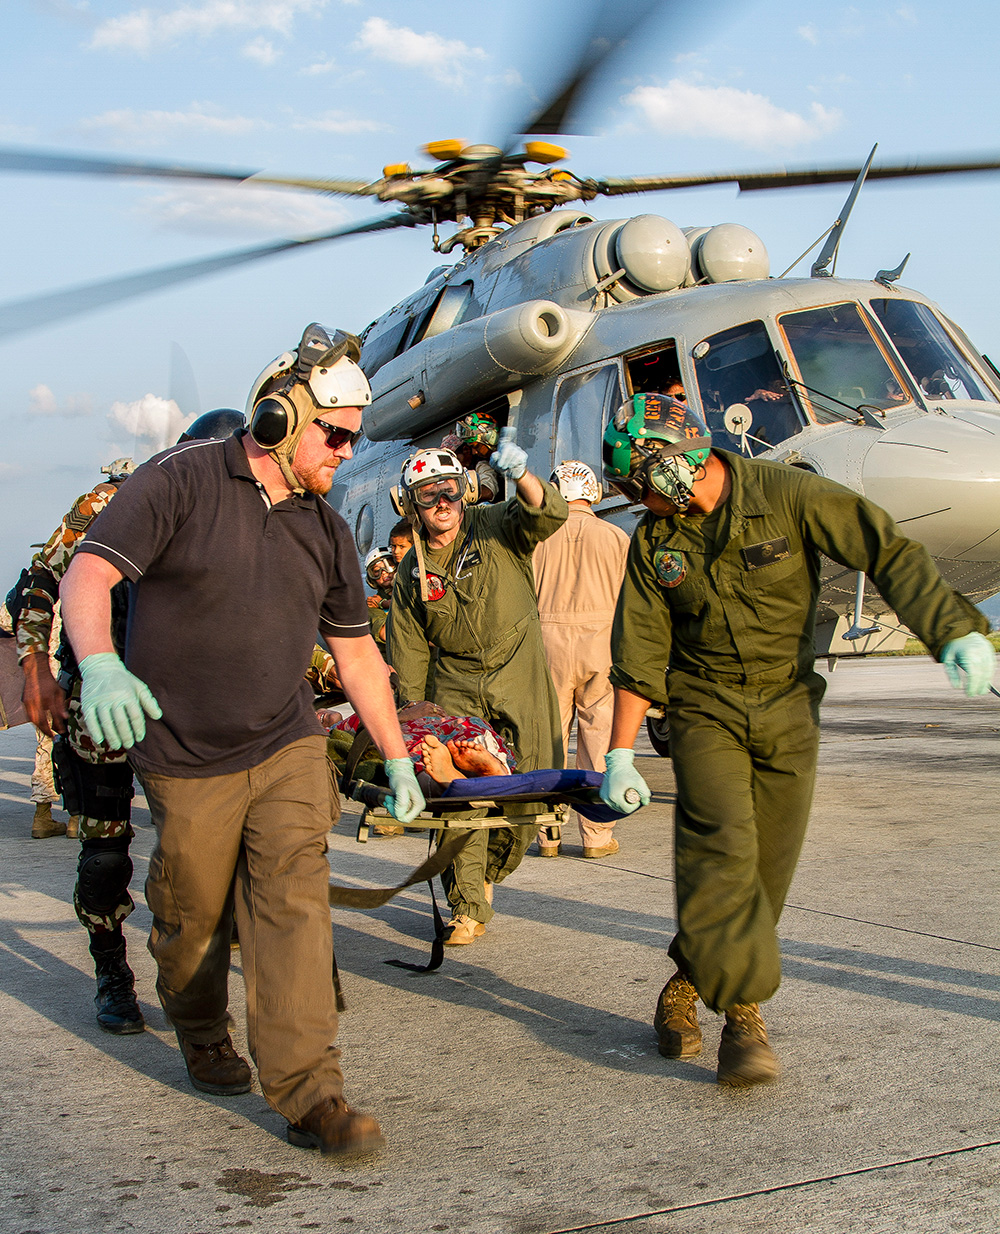 Relief personell carrying some affected by a disaster on a stretcher with a helicopter taking off behind them.